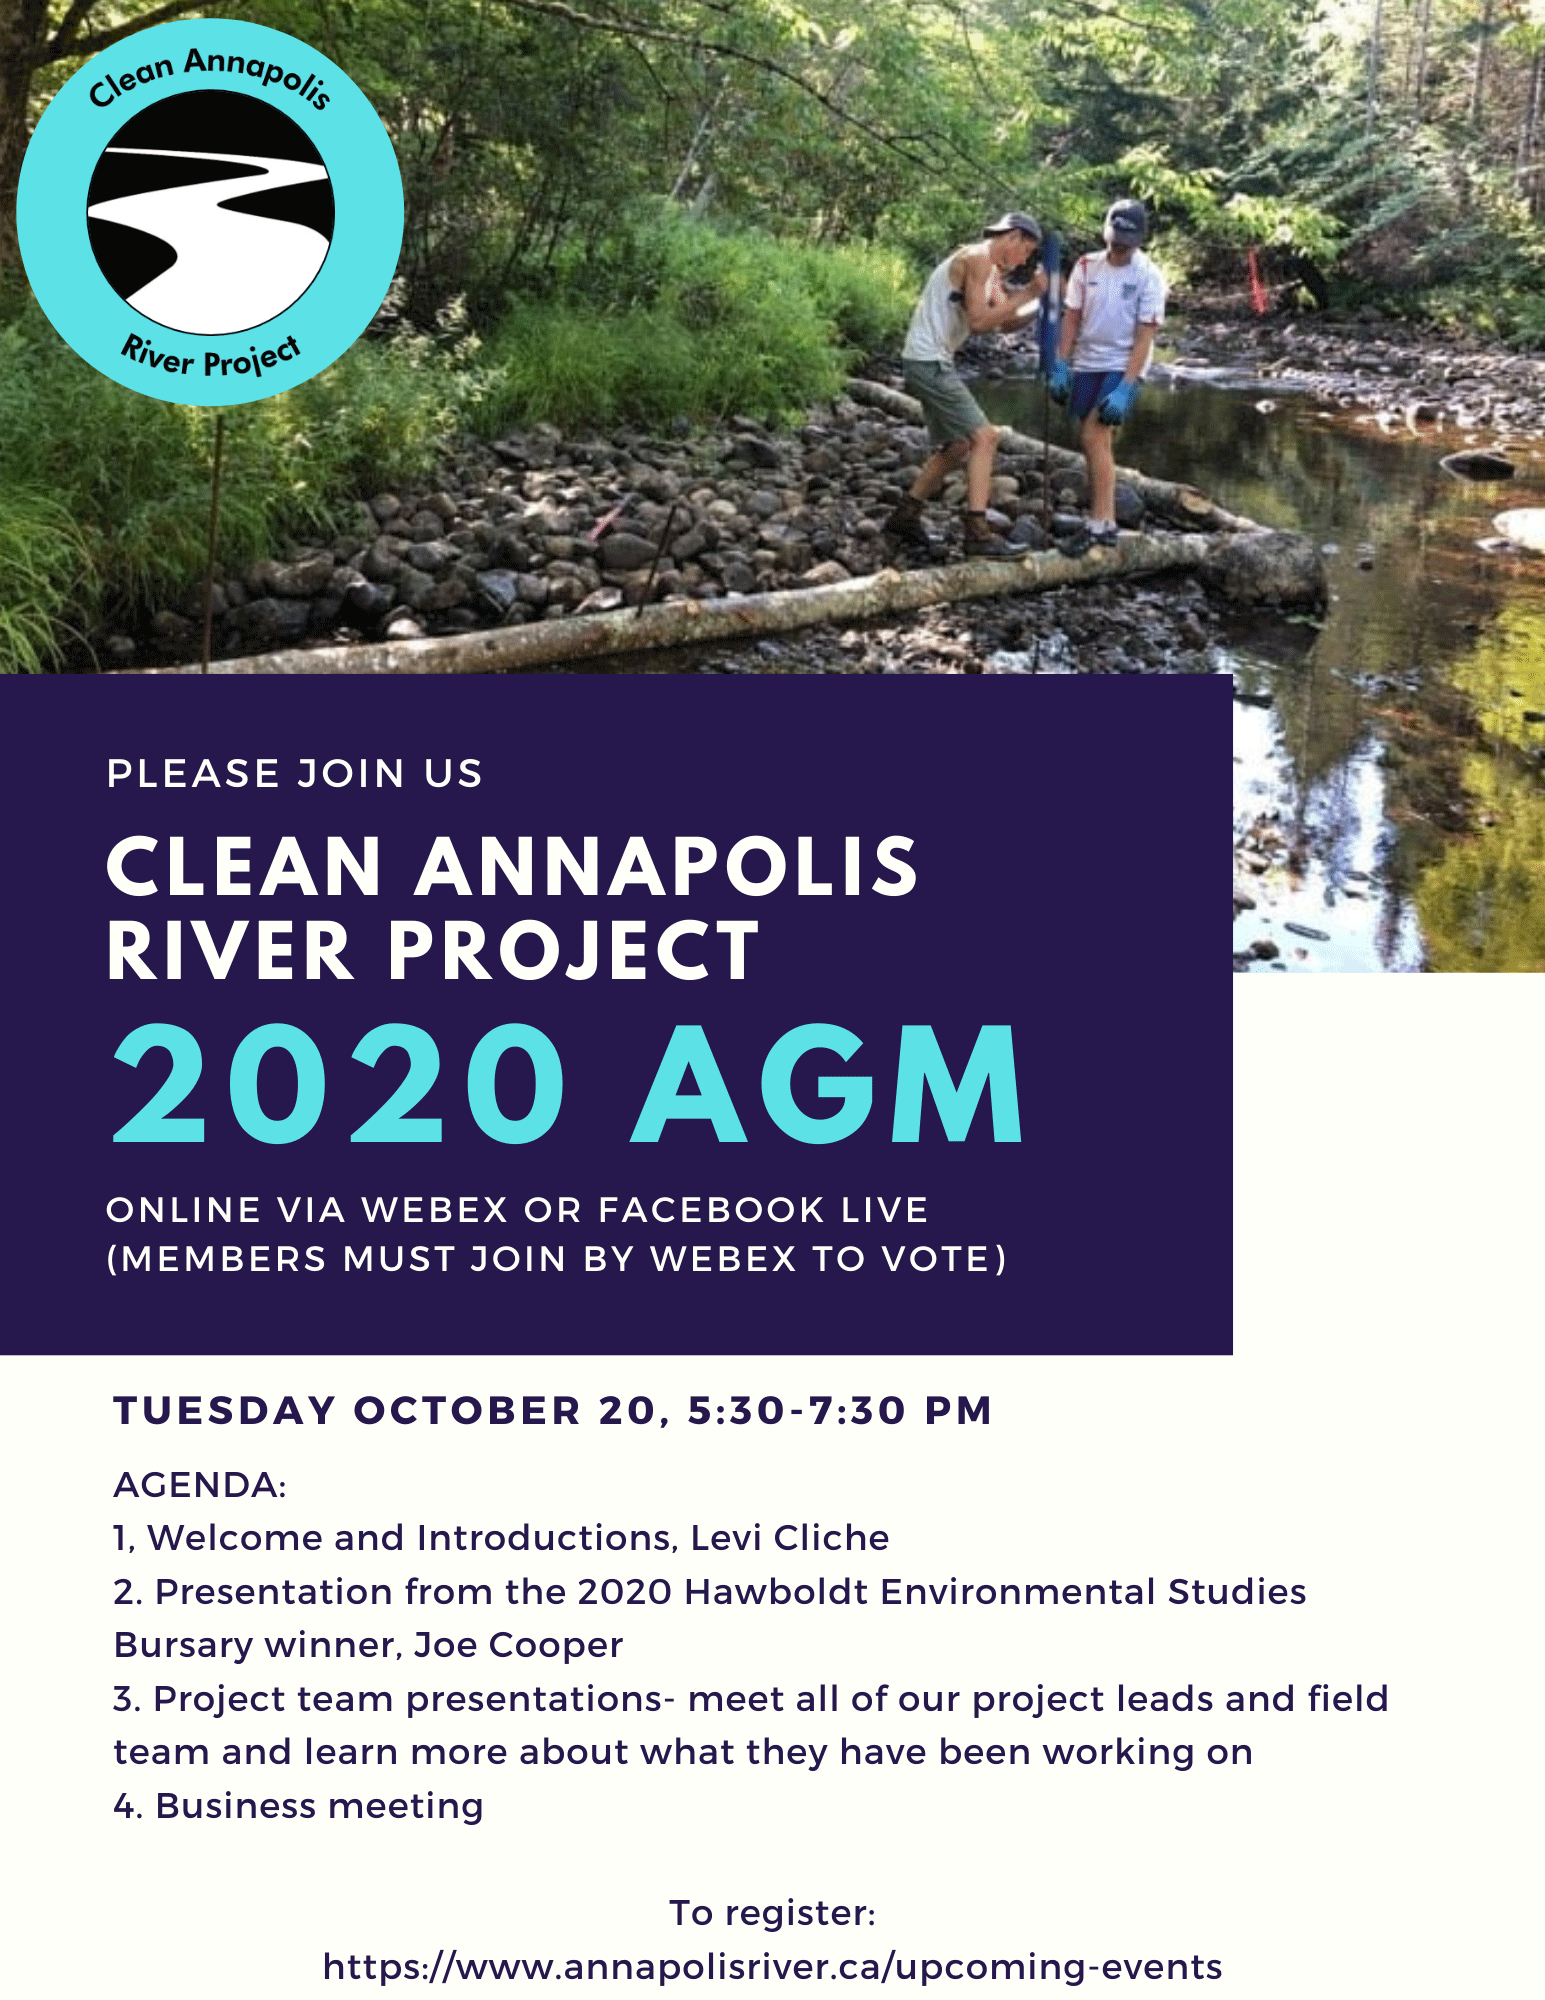 Clean Annapolis River Project - AGM Oct 20, 2020